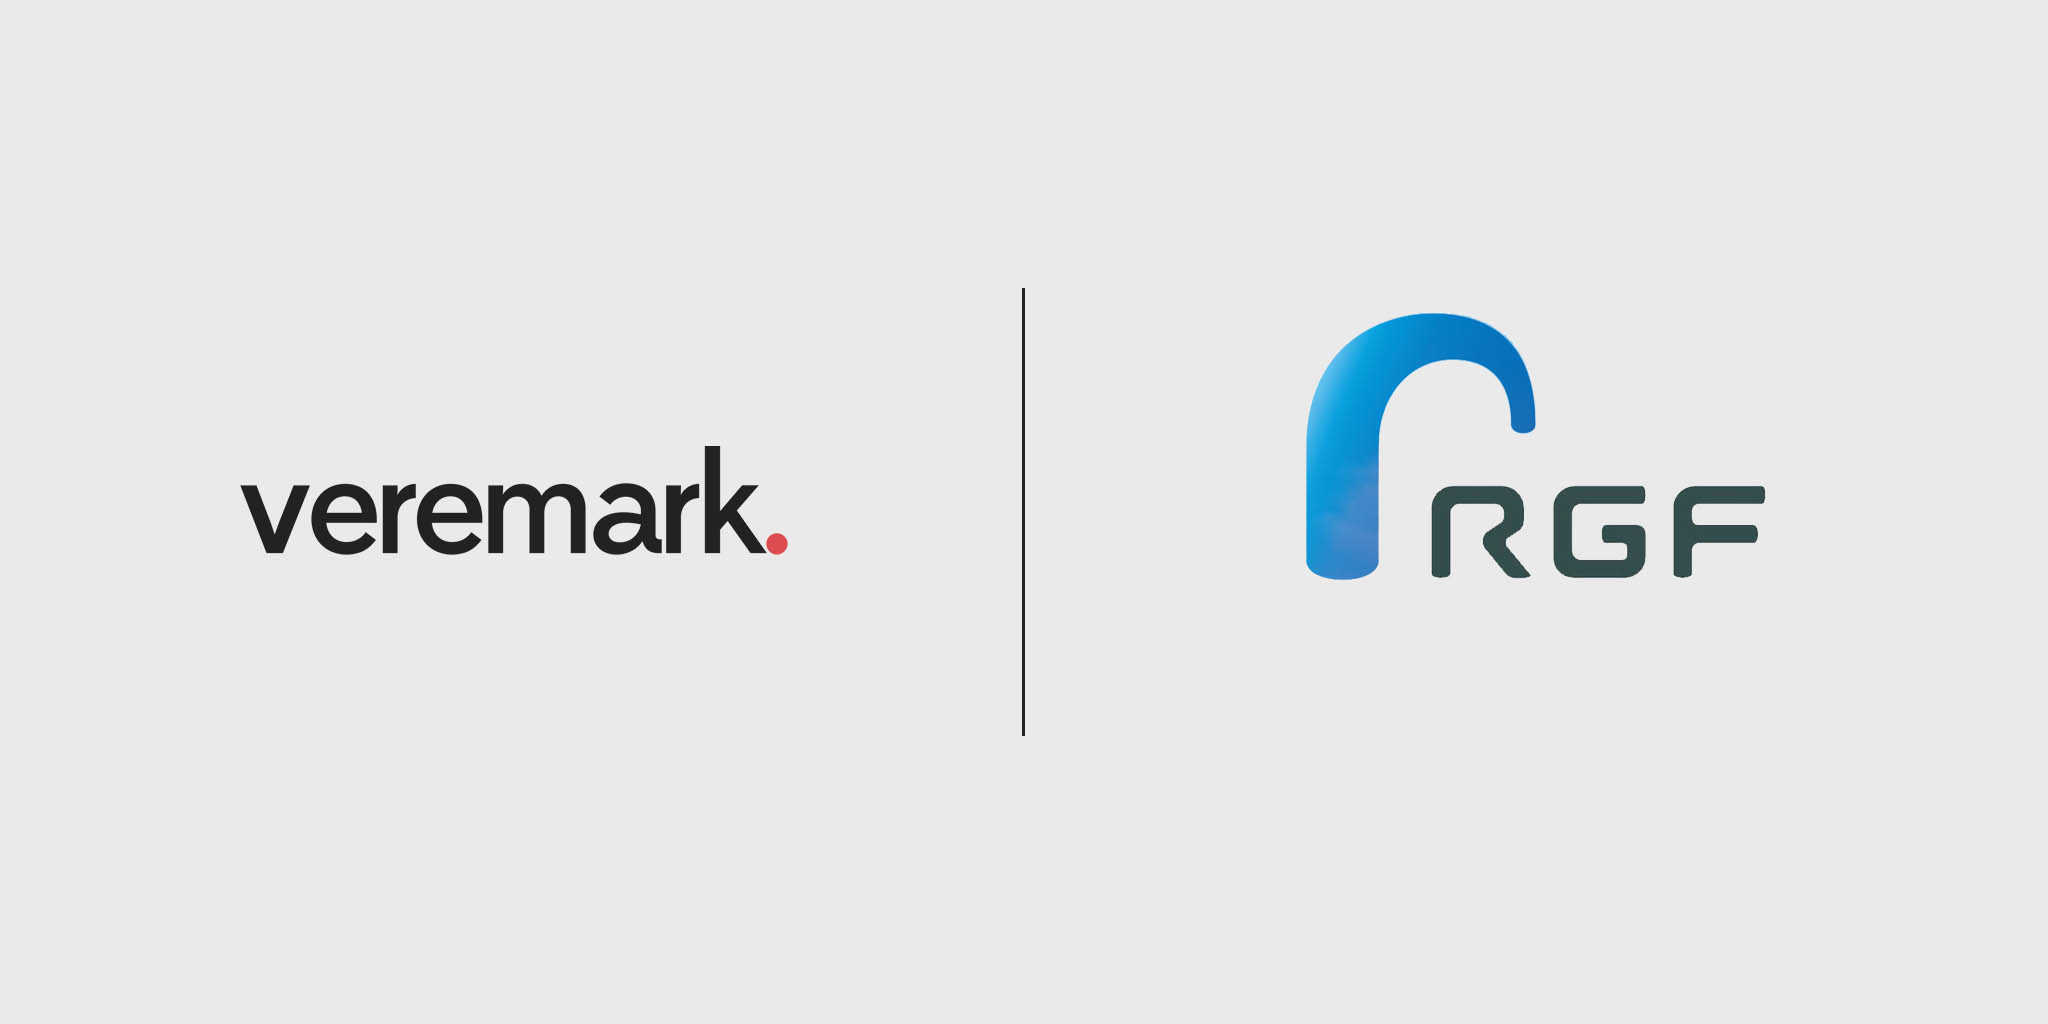 Veremark and RGF Logos next to each other